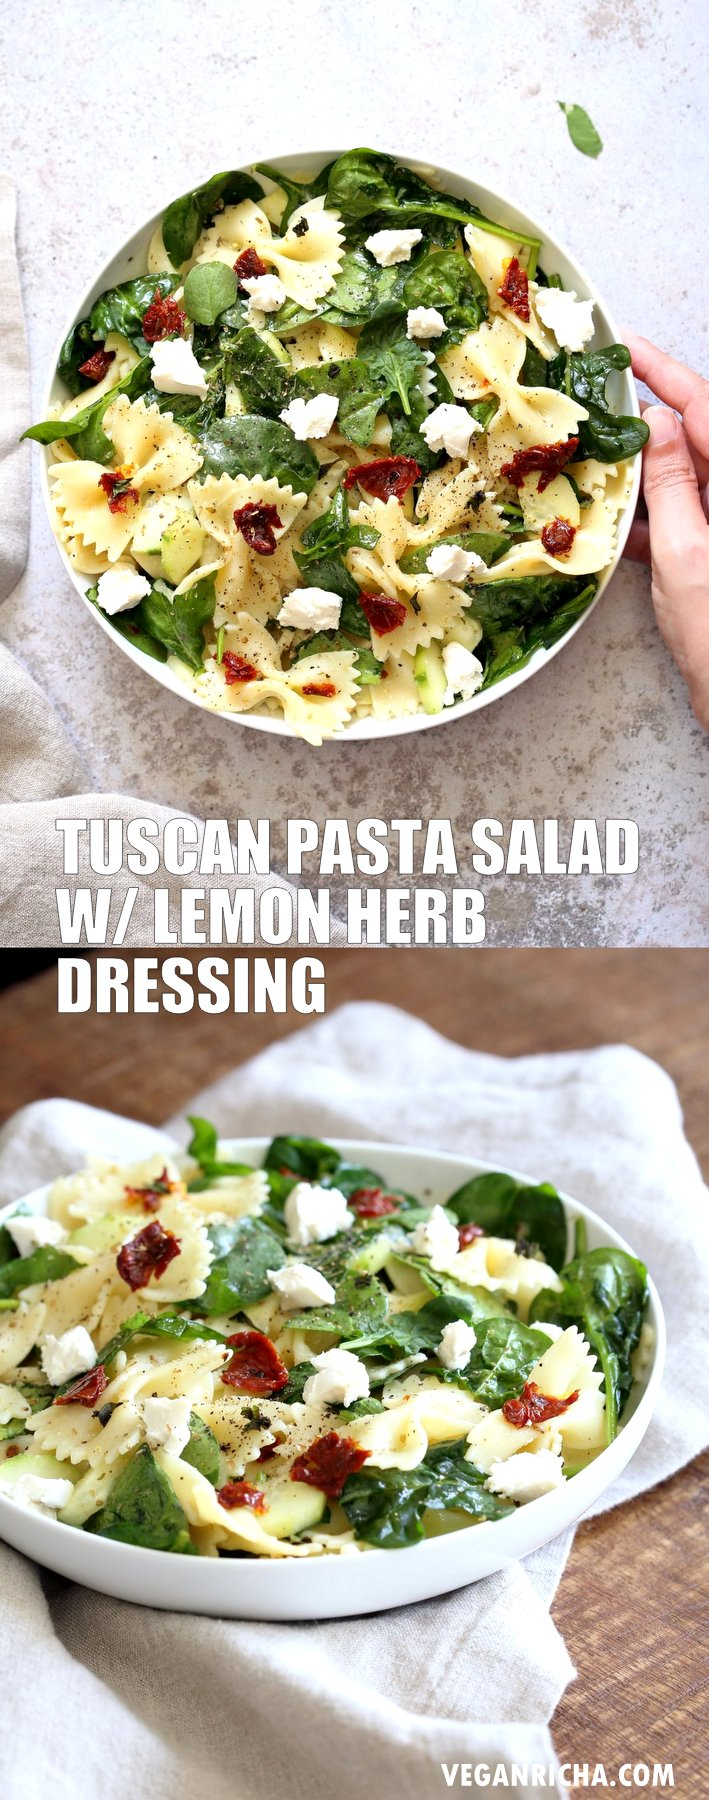 Tuscan Pasta Salad with Lemon Garlic Herb Vinaigrette. Farfalle Pasta Salad with sun dried tomato, cucumber, spinach, vegan feta and Tuscan/Mediterranean flavors. #Vegan #Soyfree #Recipe. Can be #nutfree and #glutenfree #veganricha